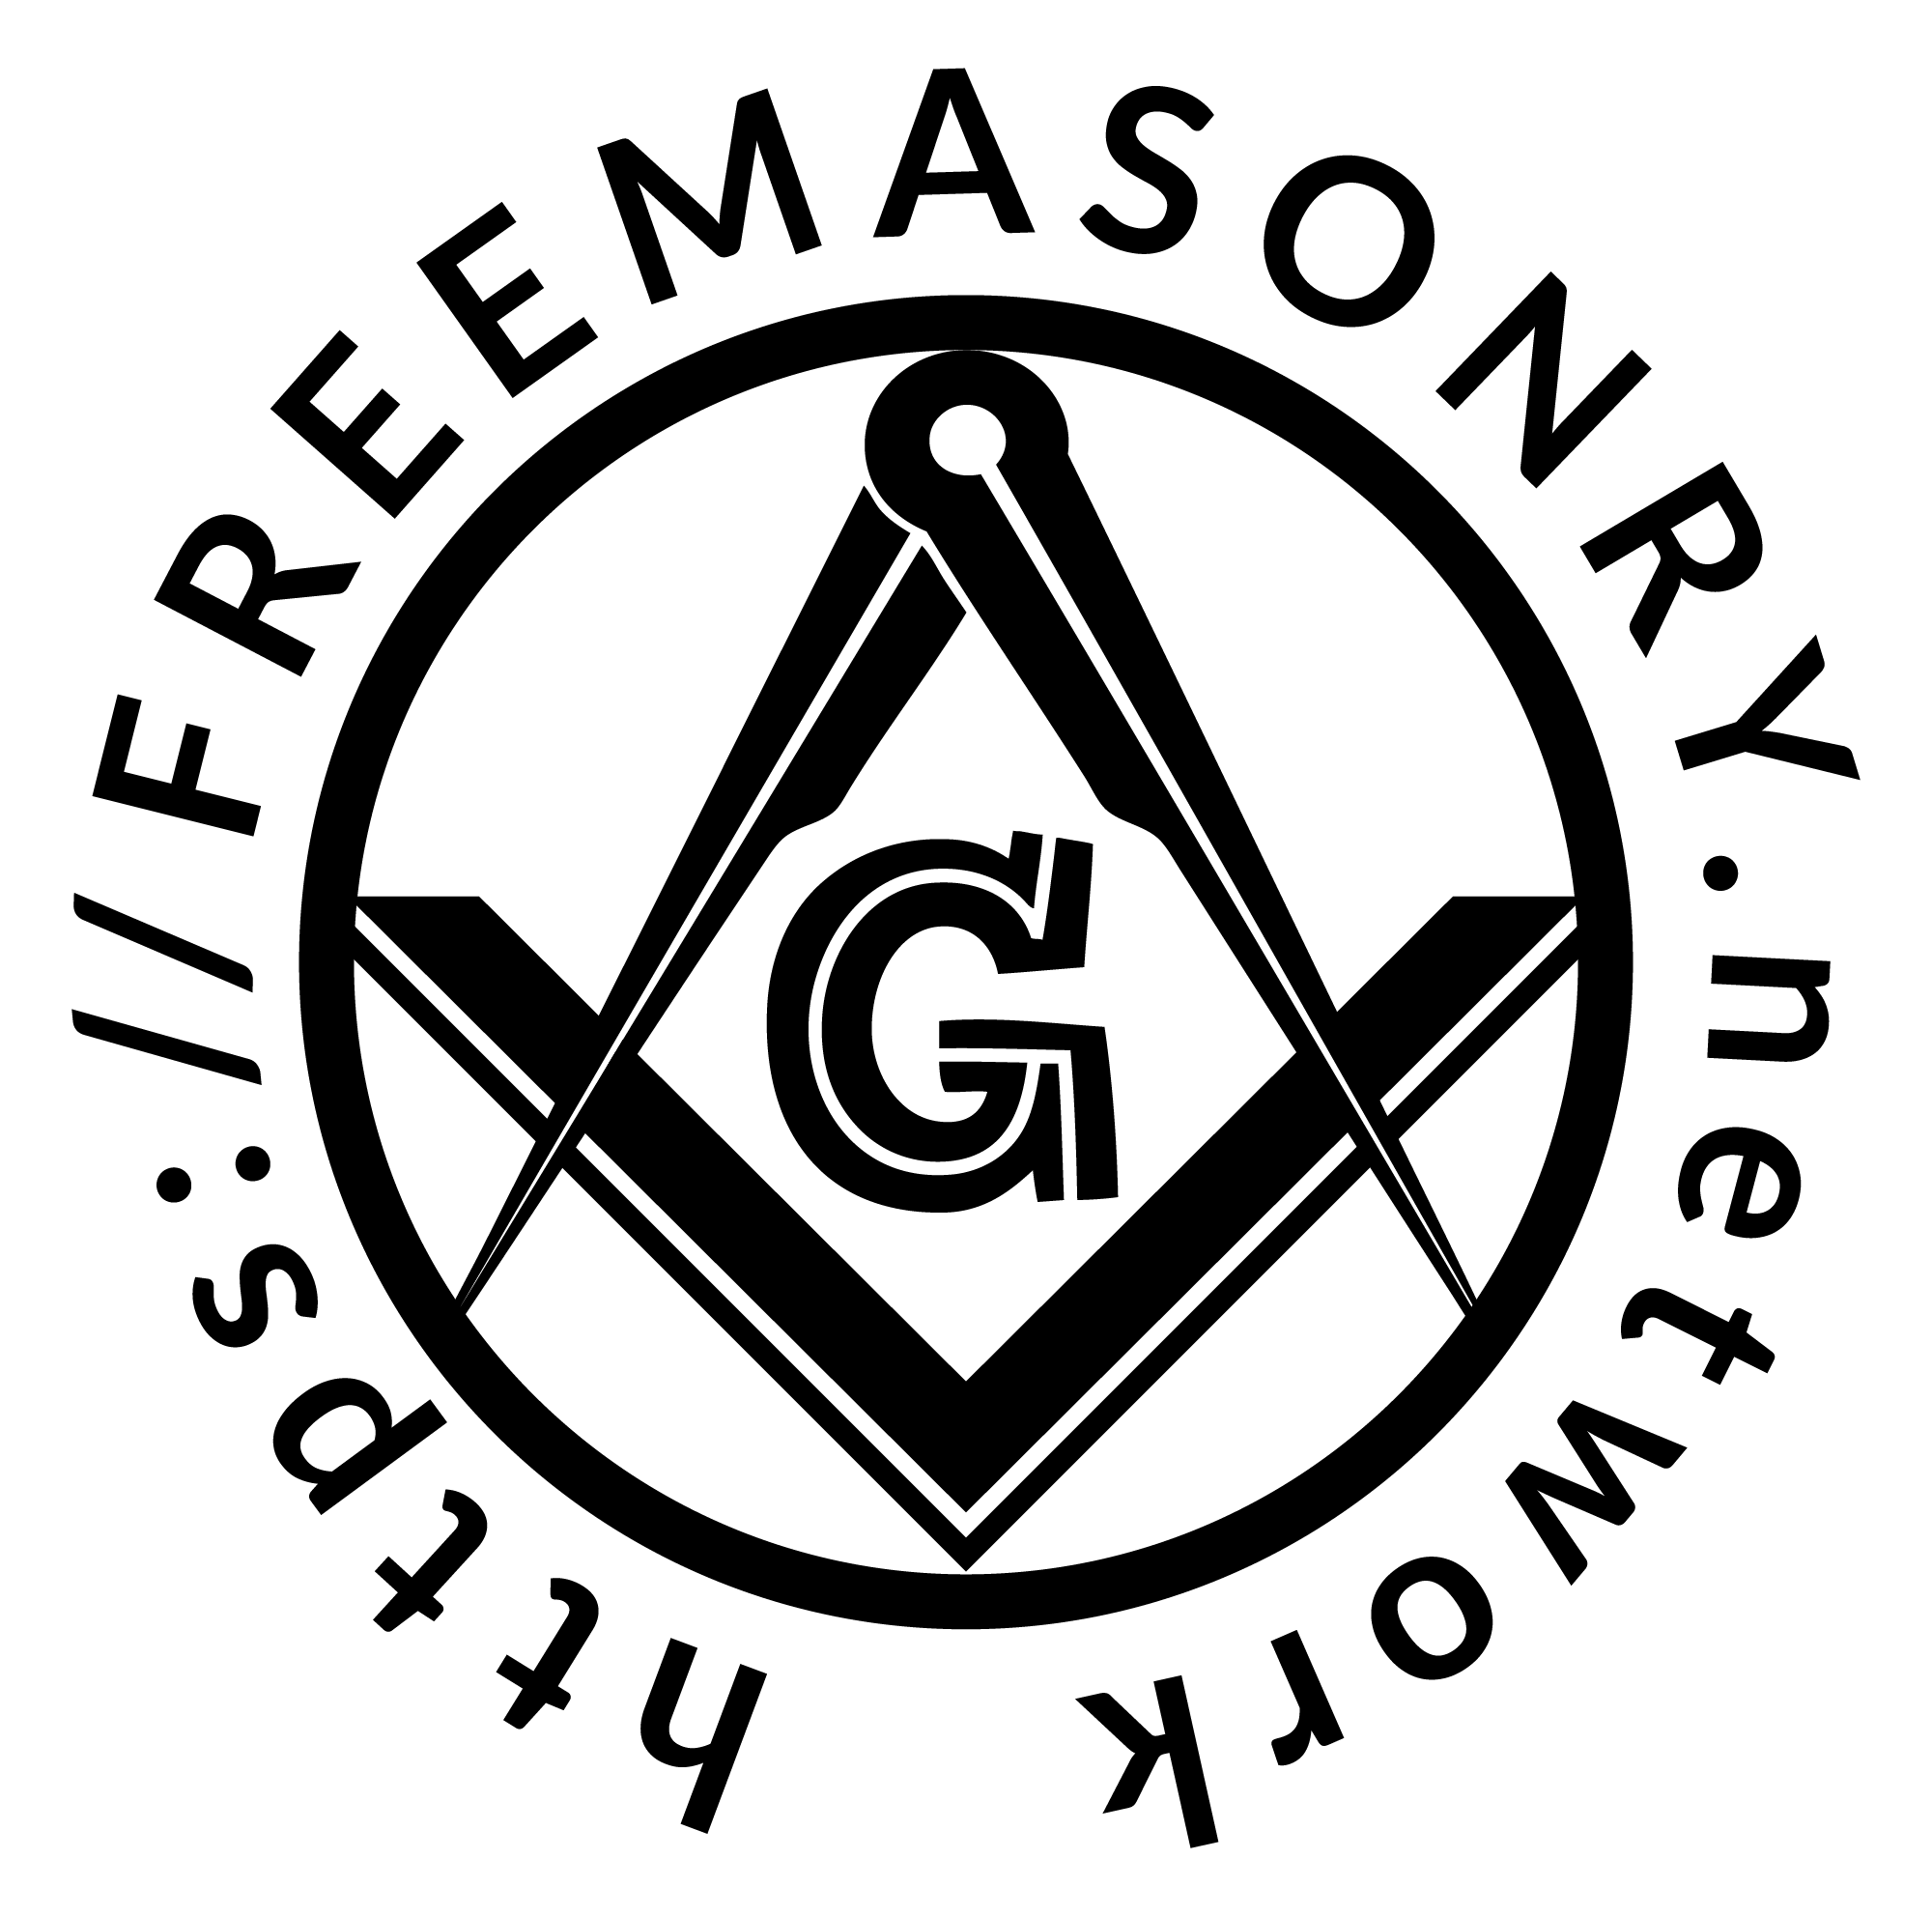 Decoded: Freemasonry's Illustrated Rulebooks